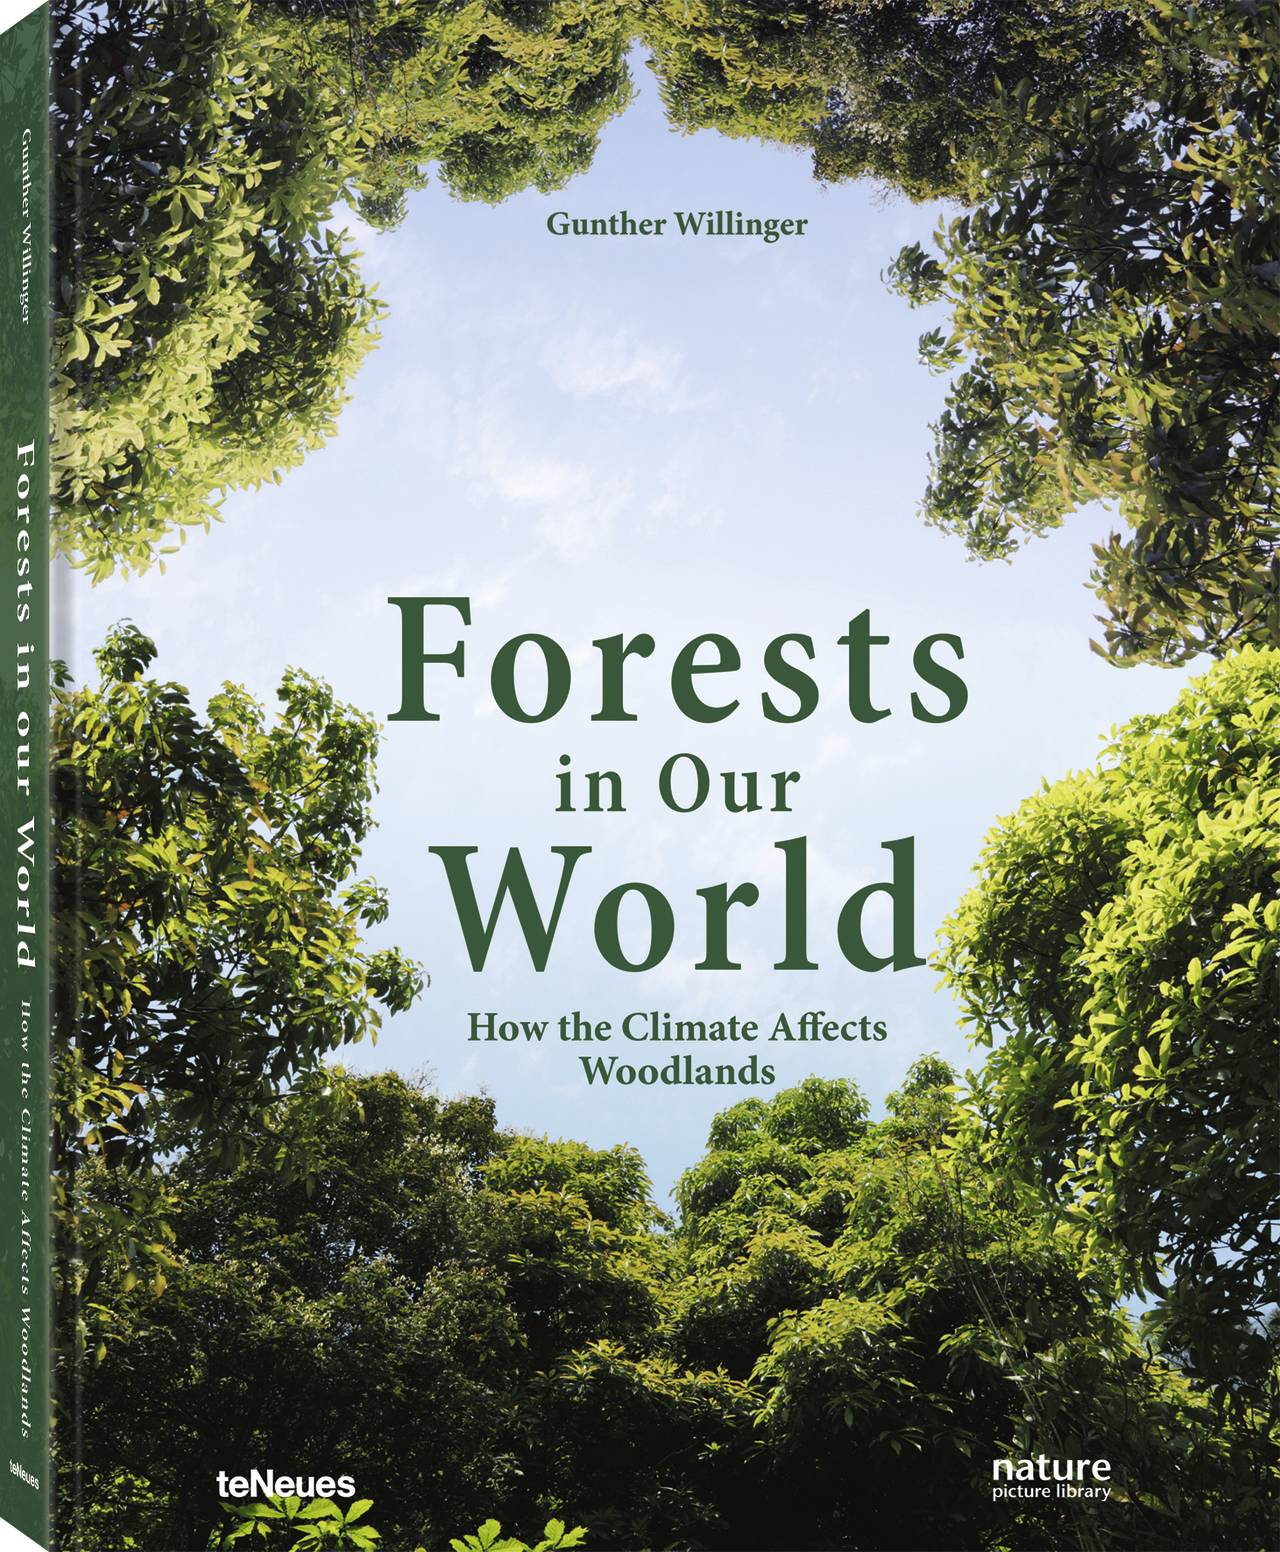 © Forests in Our World - How the Climate Affects Woodland by Gunther Willinger, published by teNeues, www.teneues.com, Photo © iStock / hope1983